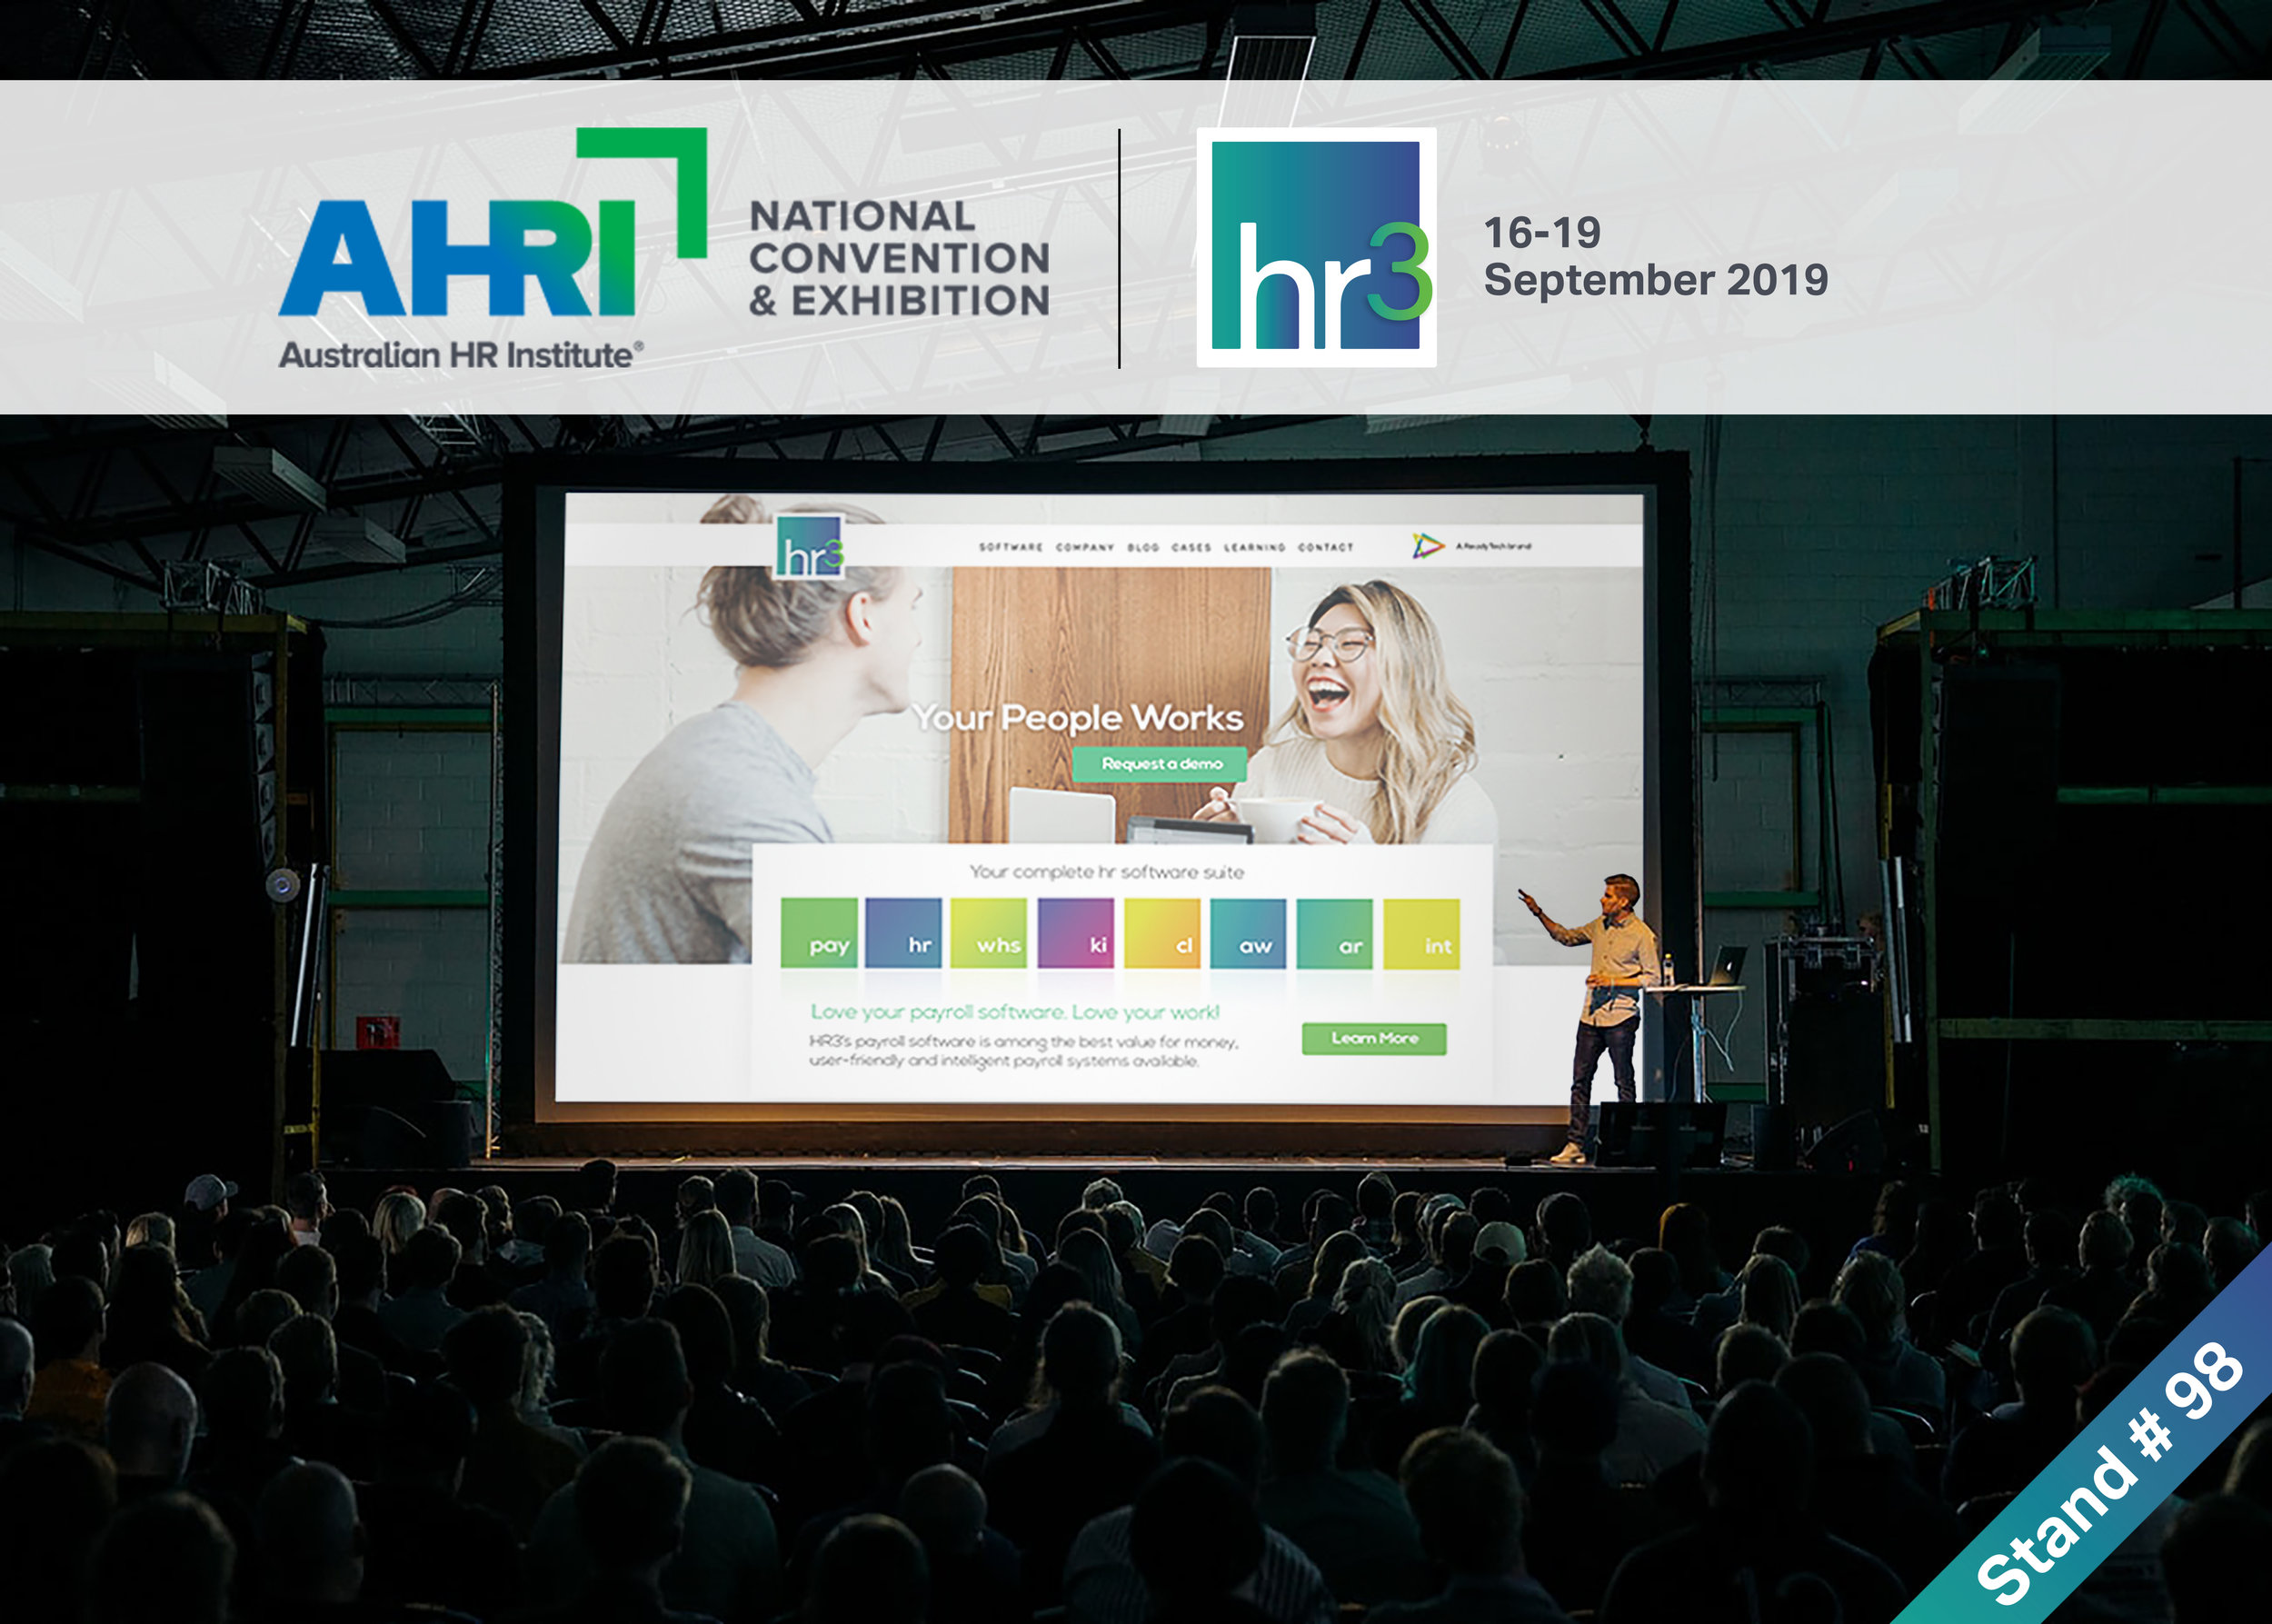 - If you want to find out more about our brand refresh, visit us at the AHRI National Convention and Exhibition in Brisbane or visit the ReadyTech website to learn more about us.